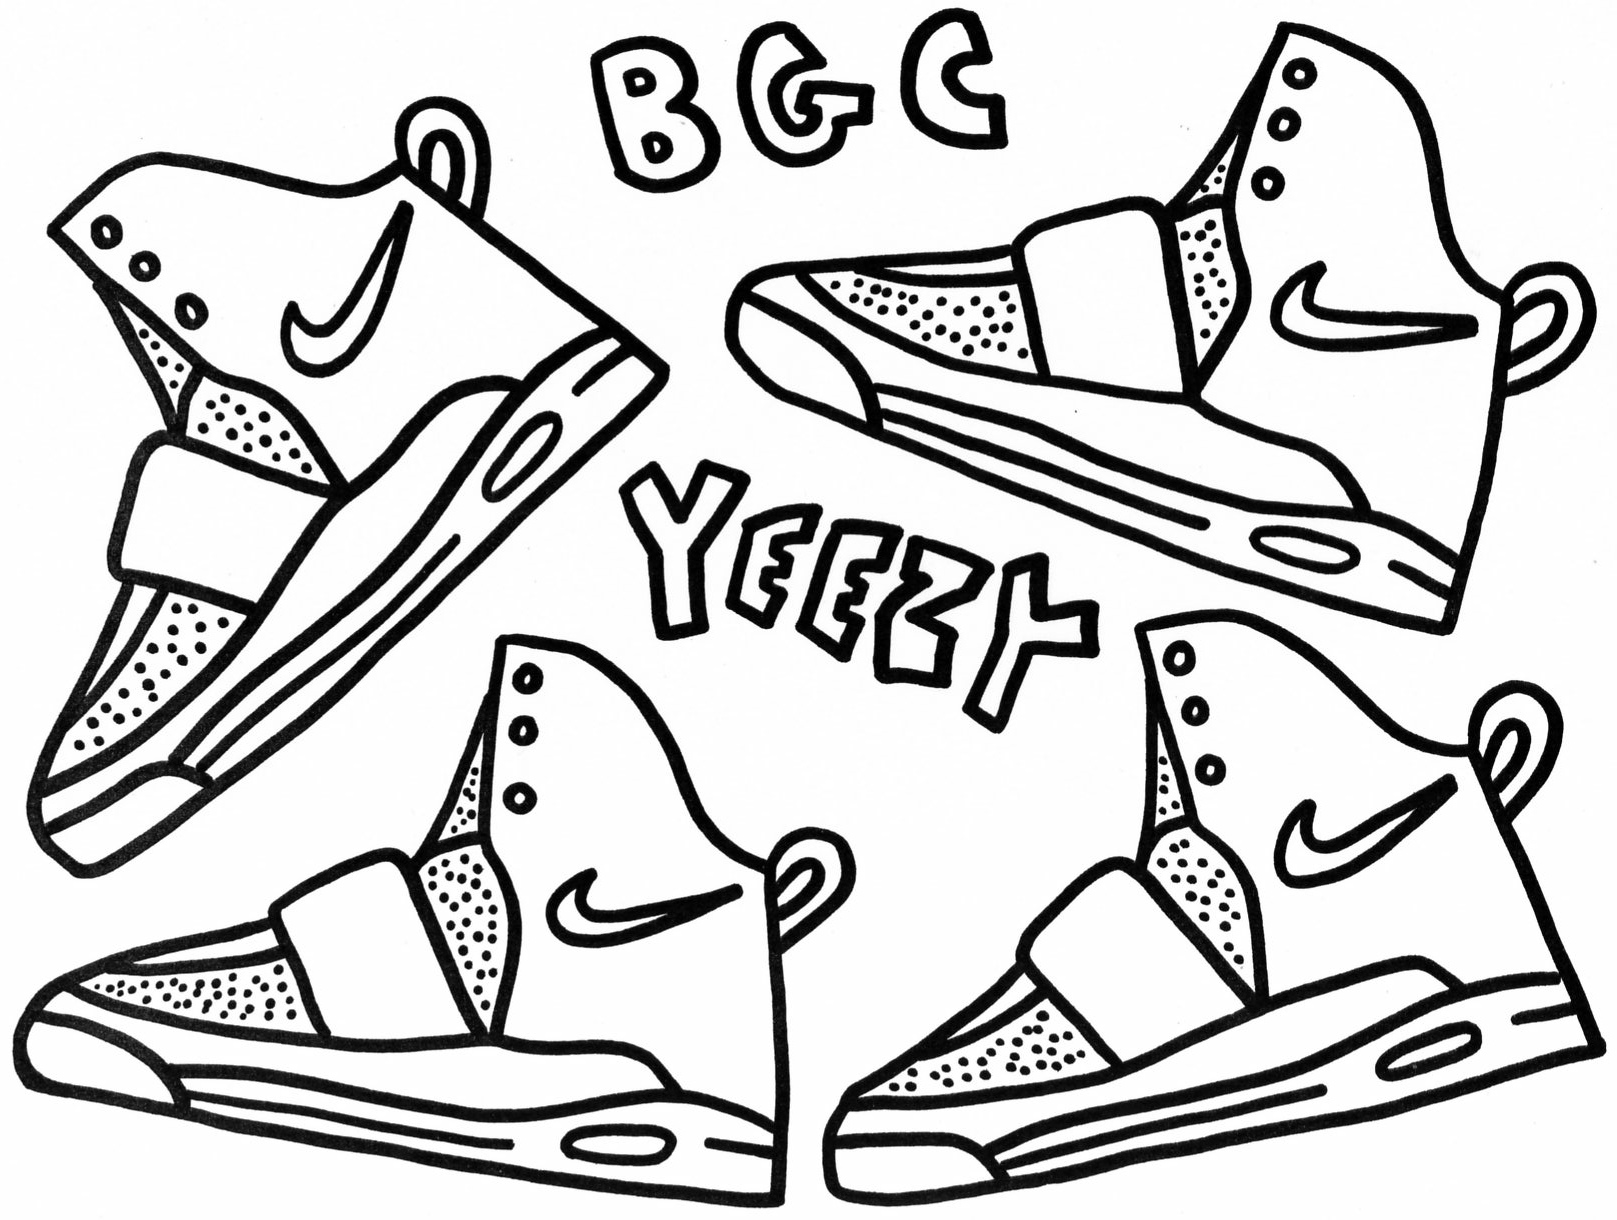 Buy yeezy shoes coloring pages > 55% OFF!